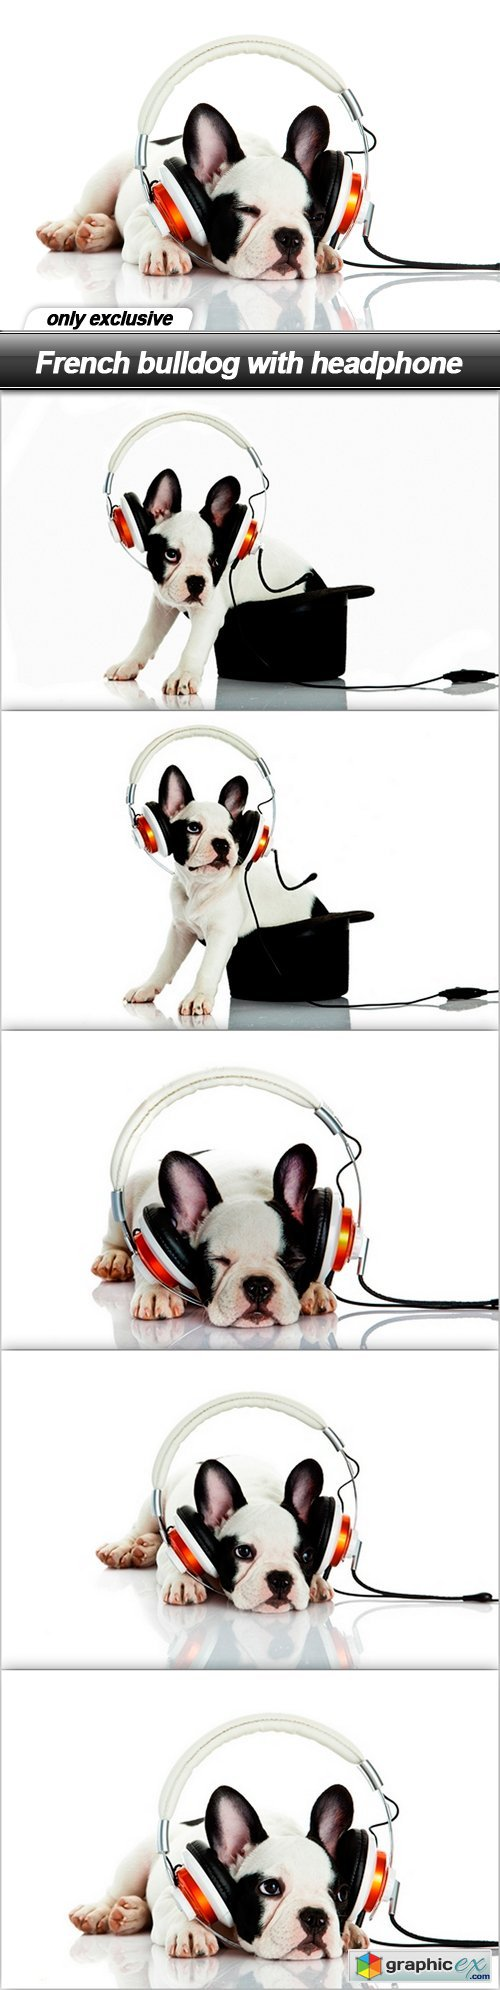 French bulldog with headphone - 6 UHQ JPEG